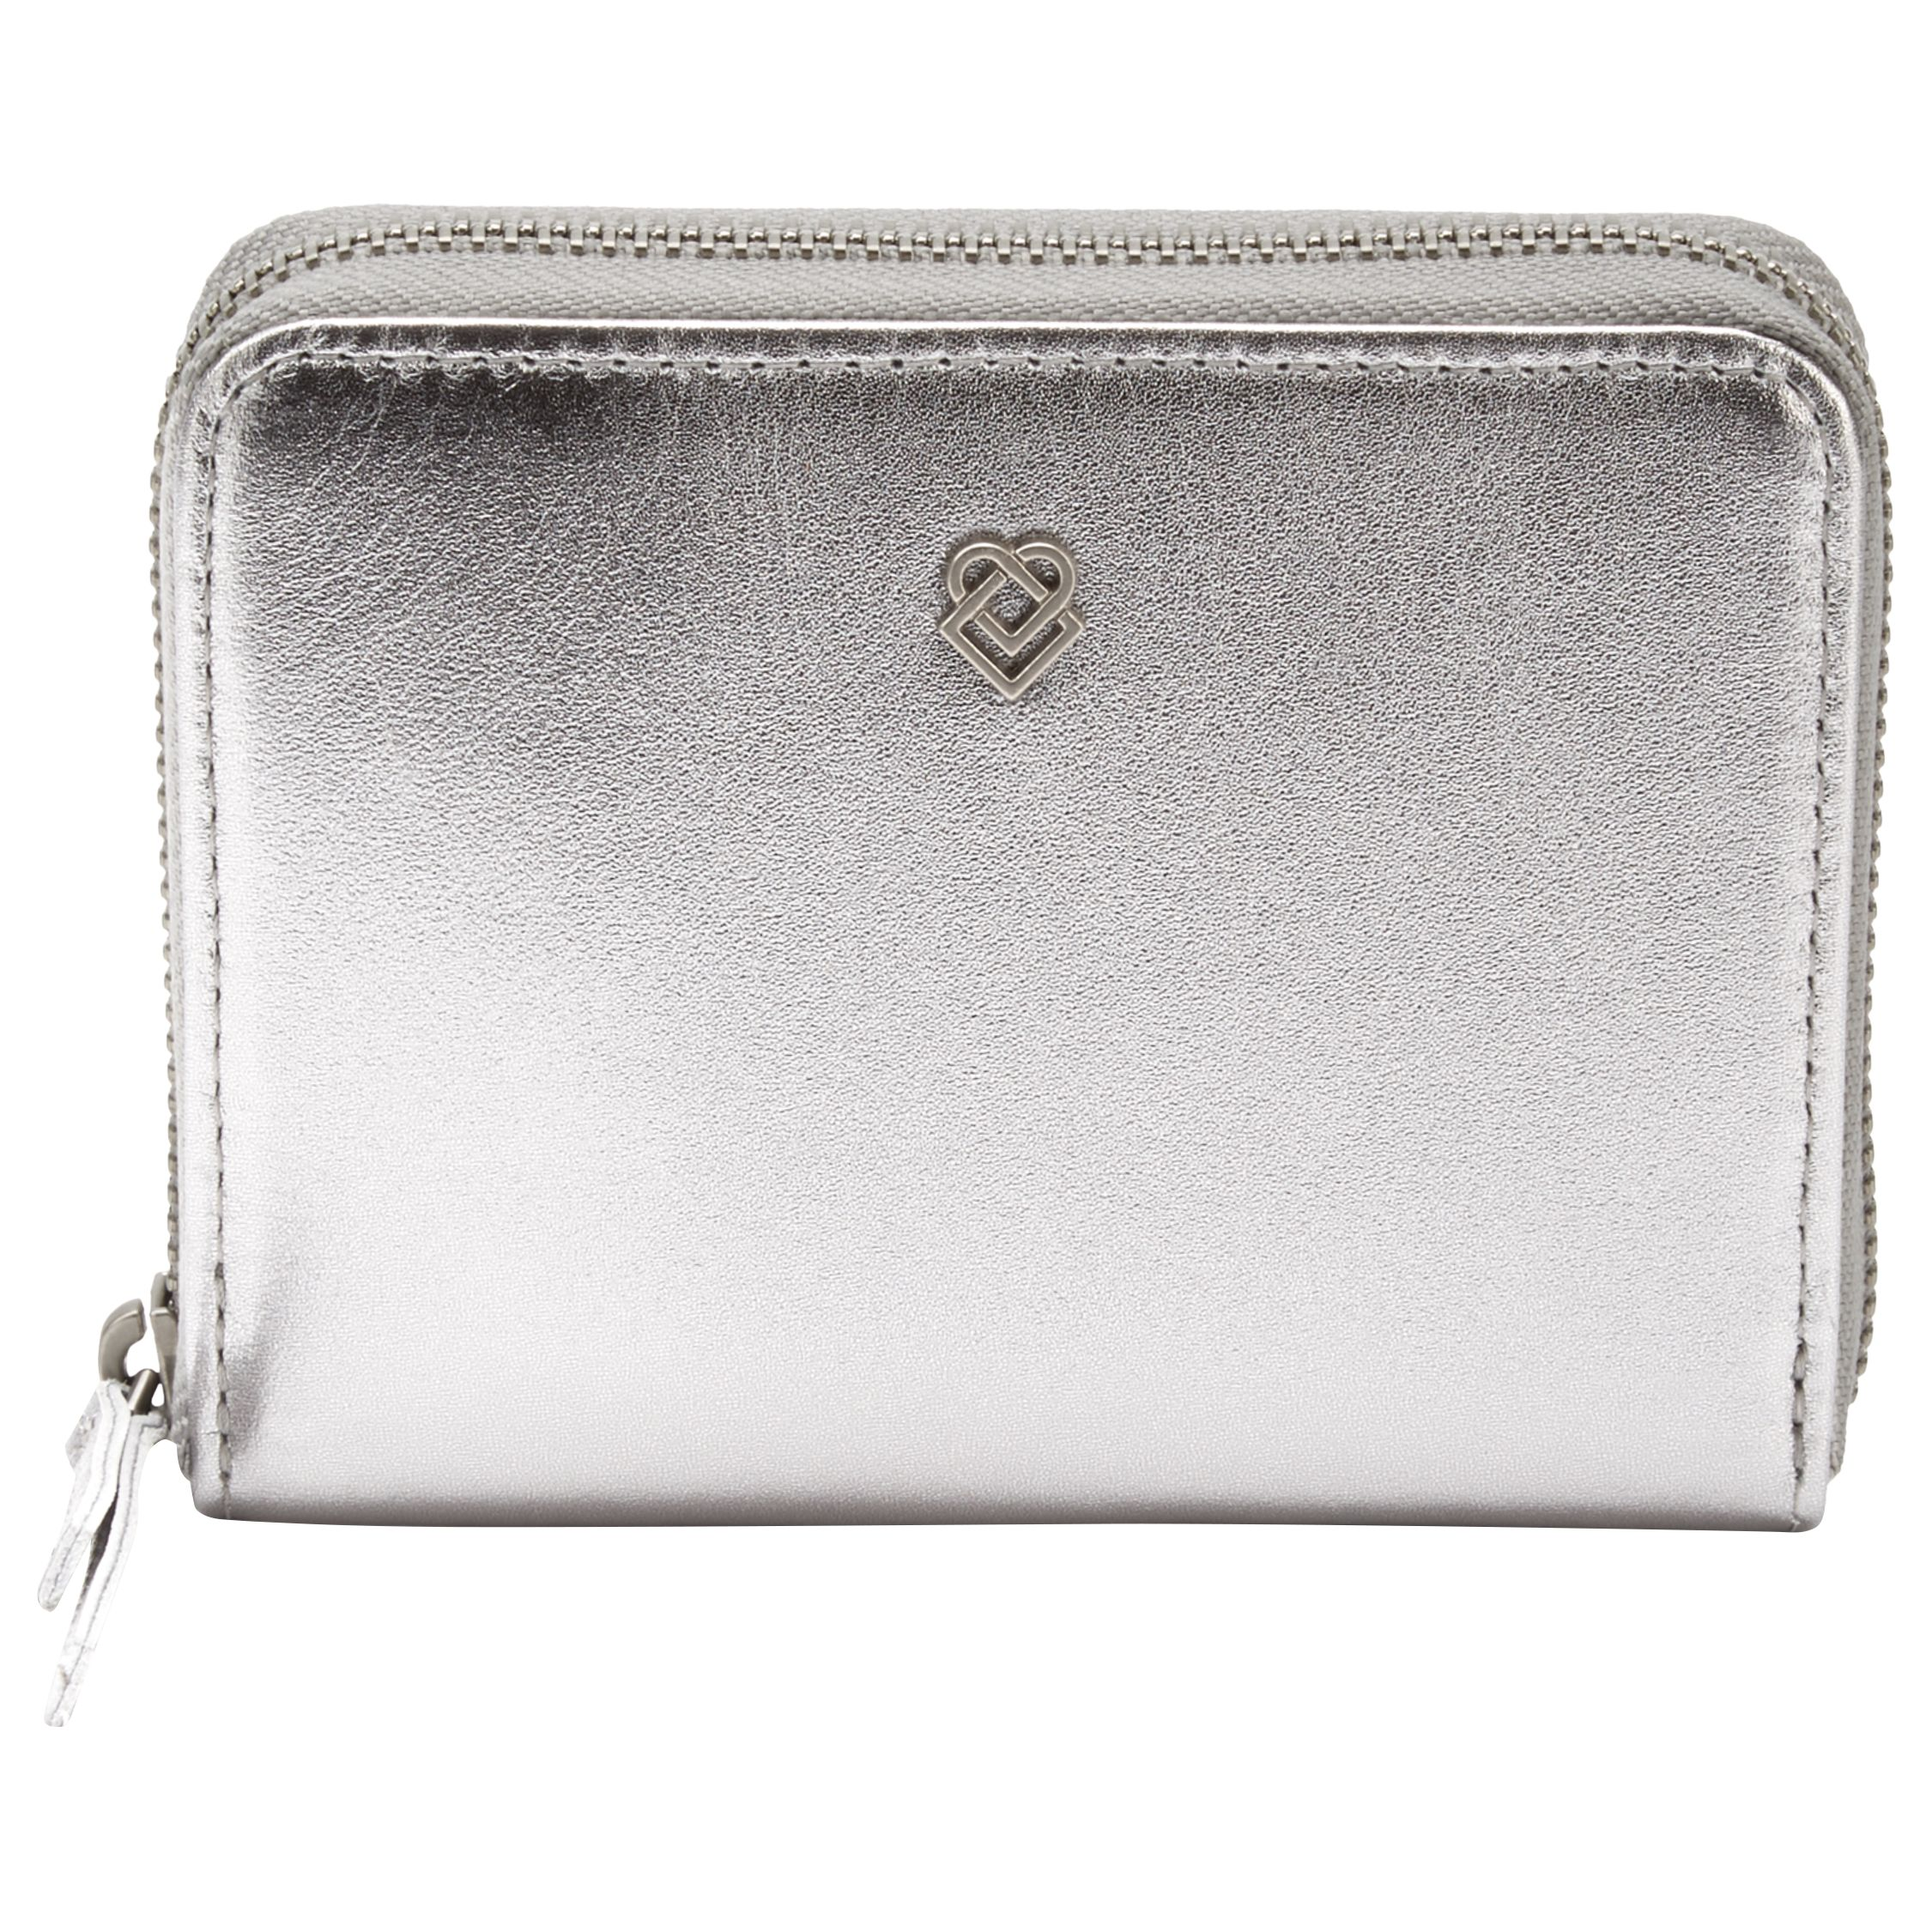 Liebeskind Liebeskind Conny Leather Zip Around Purse, Silver